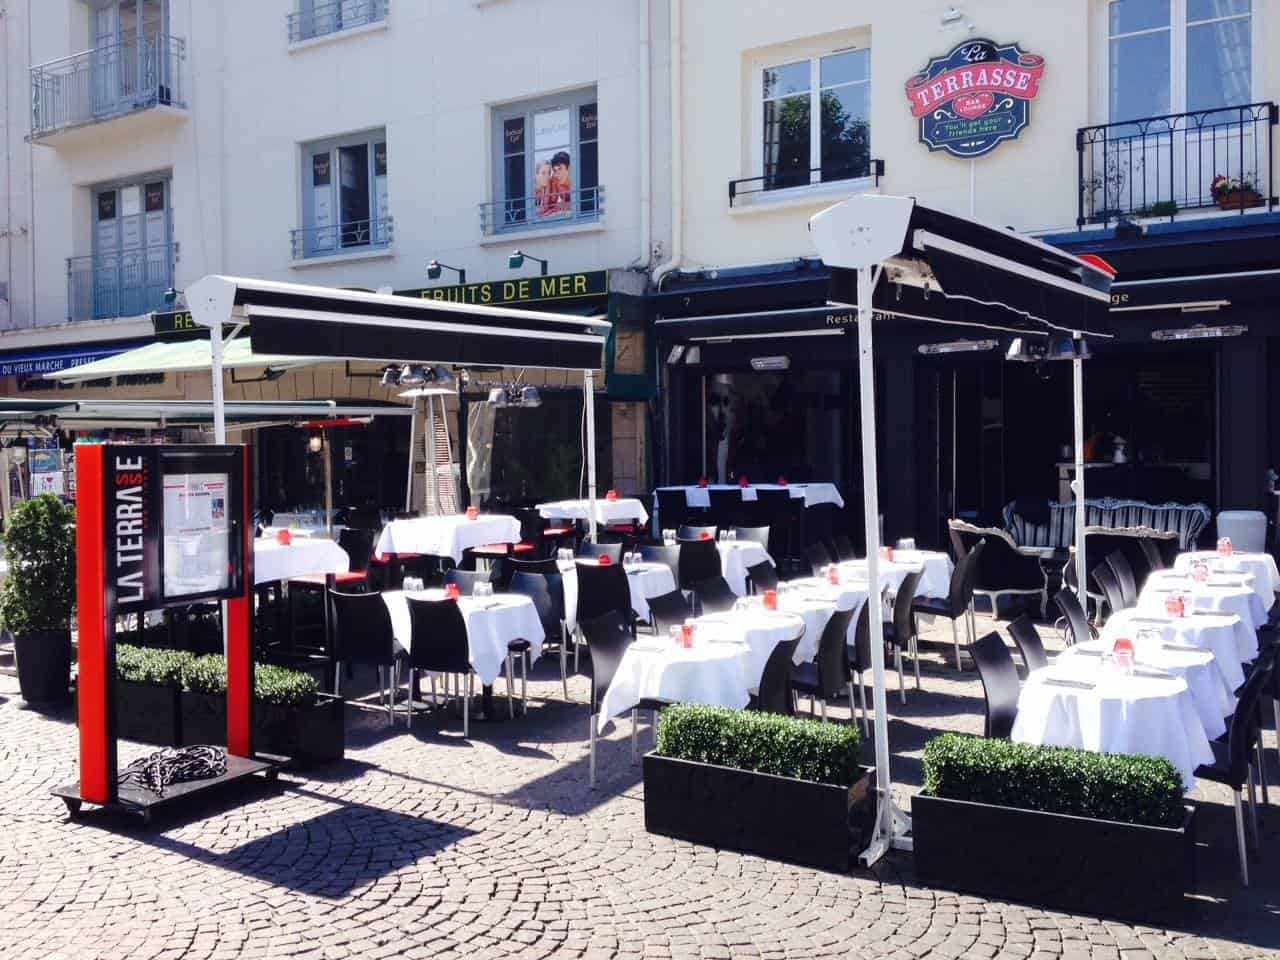 Terrasse De Normandie La Terrasse Rouen Restaurants Traditionnels Normandie